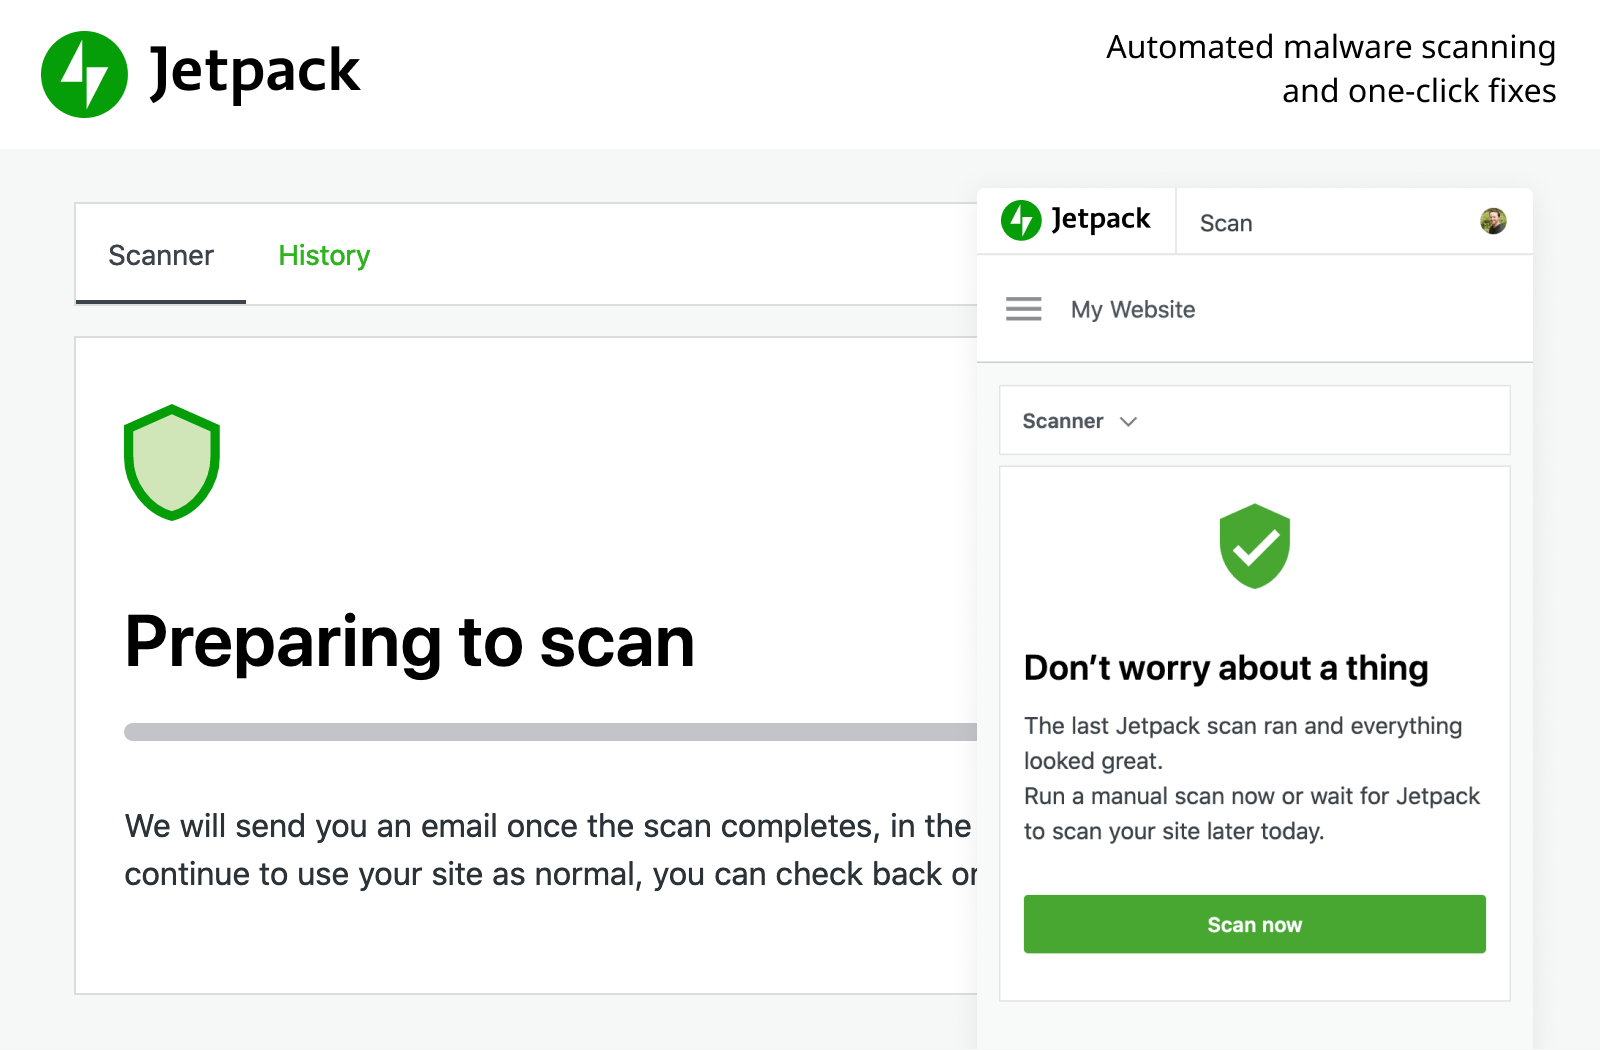 Automated malware scanning and one-click fixes keep your site one step ahead of security threats.